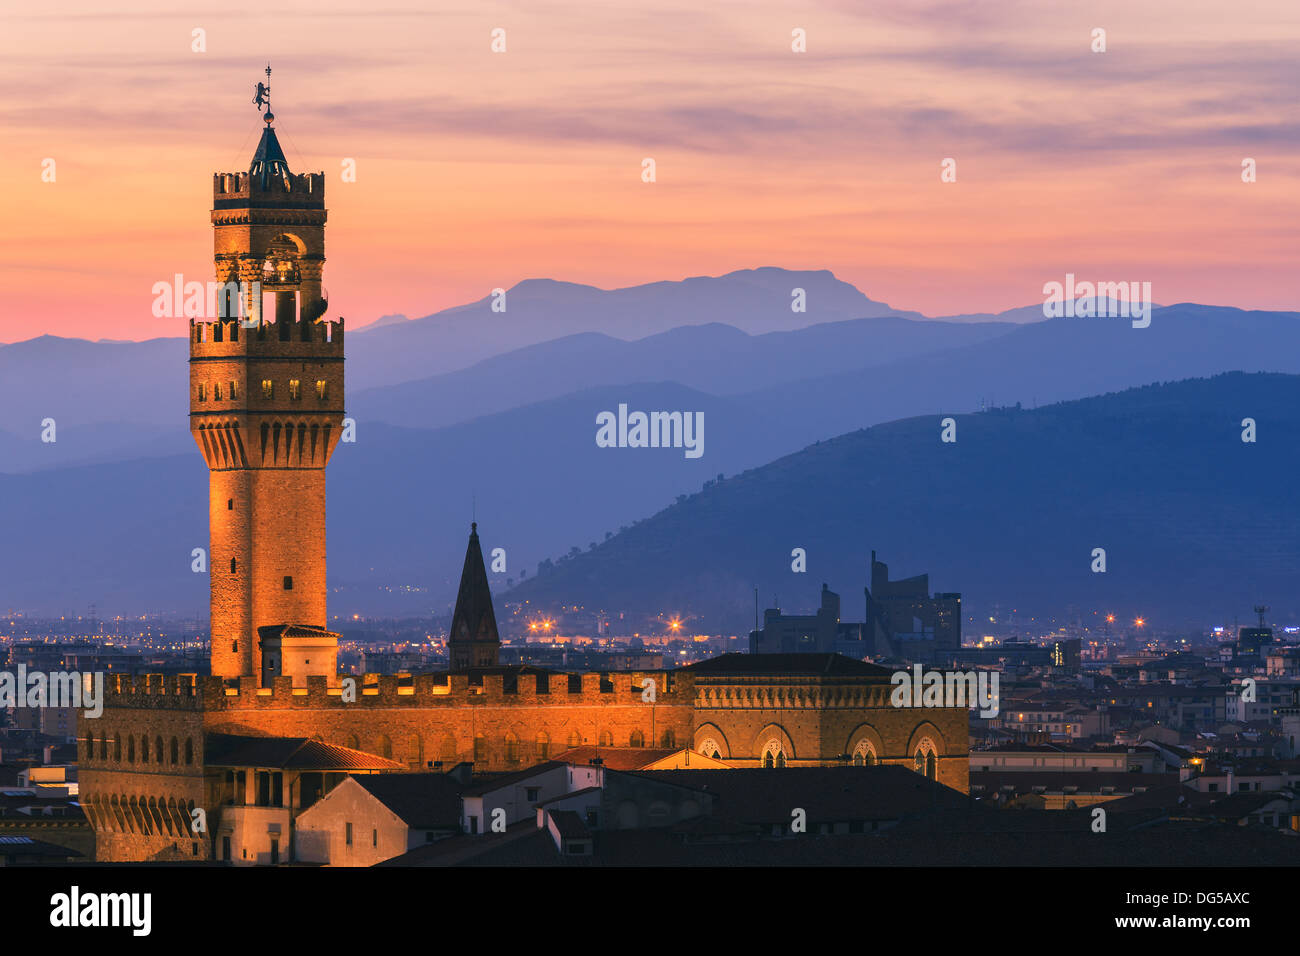 The Palazzo Vecchio is the town hall of Florence, Italy. Taken from Piazzale Michelangelo - Stock Image